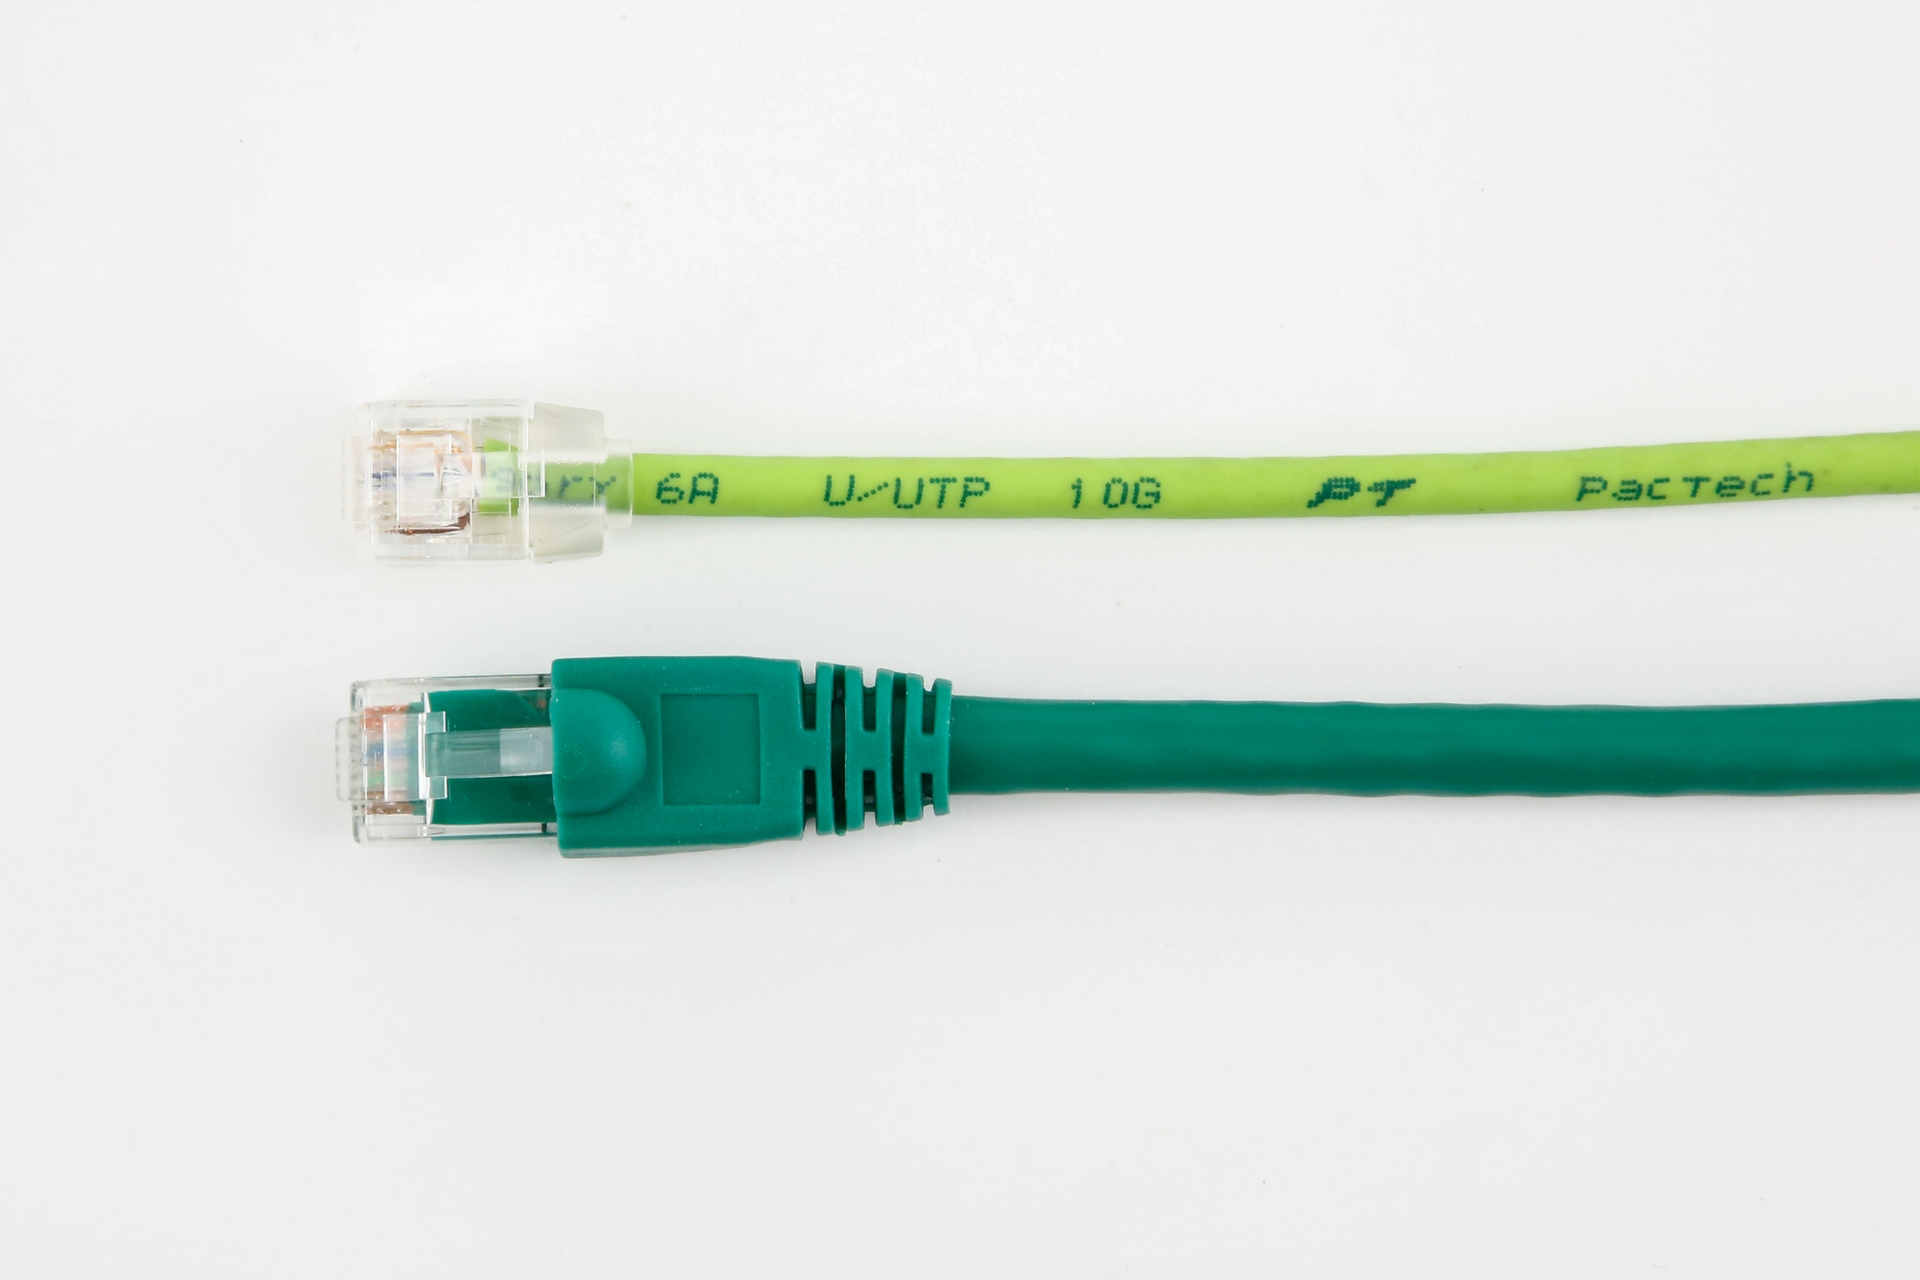 New Cat6 28awg Cable Flexmini6 6a Utp Pactech Cat5e Rj45 Ethernet Shielded 26 Awg Pvc Jacket Gray 150 Ft